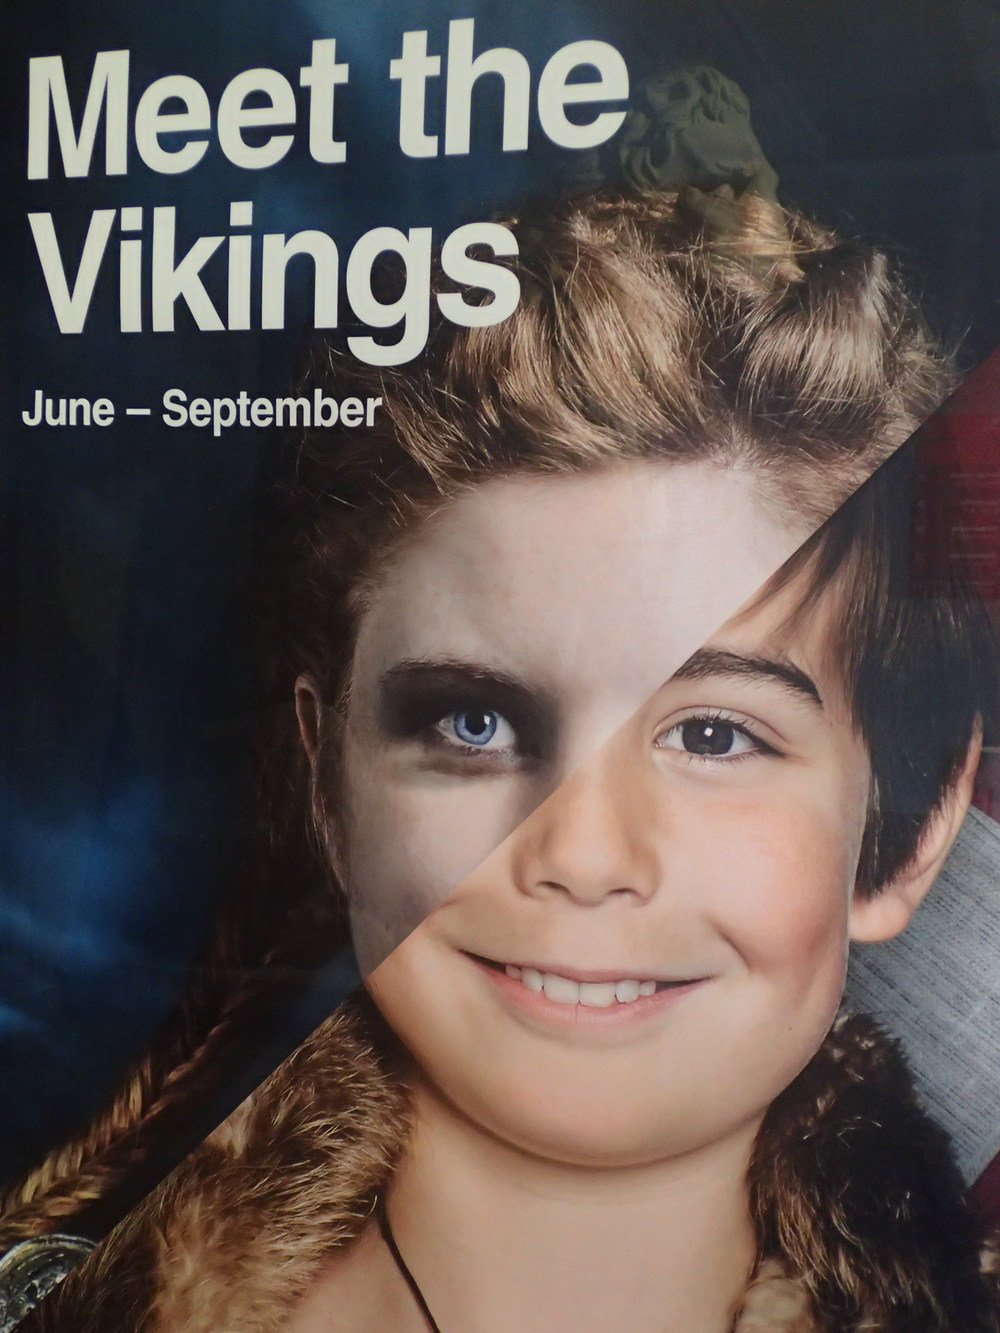 Detail from the 2015 summer season poster of the Viking Museum in Stockholm